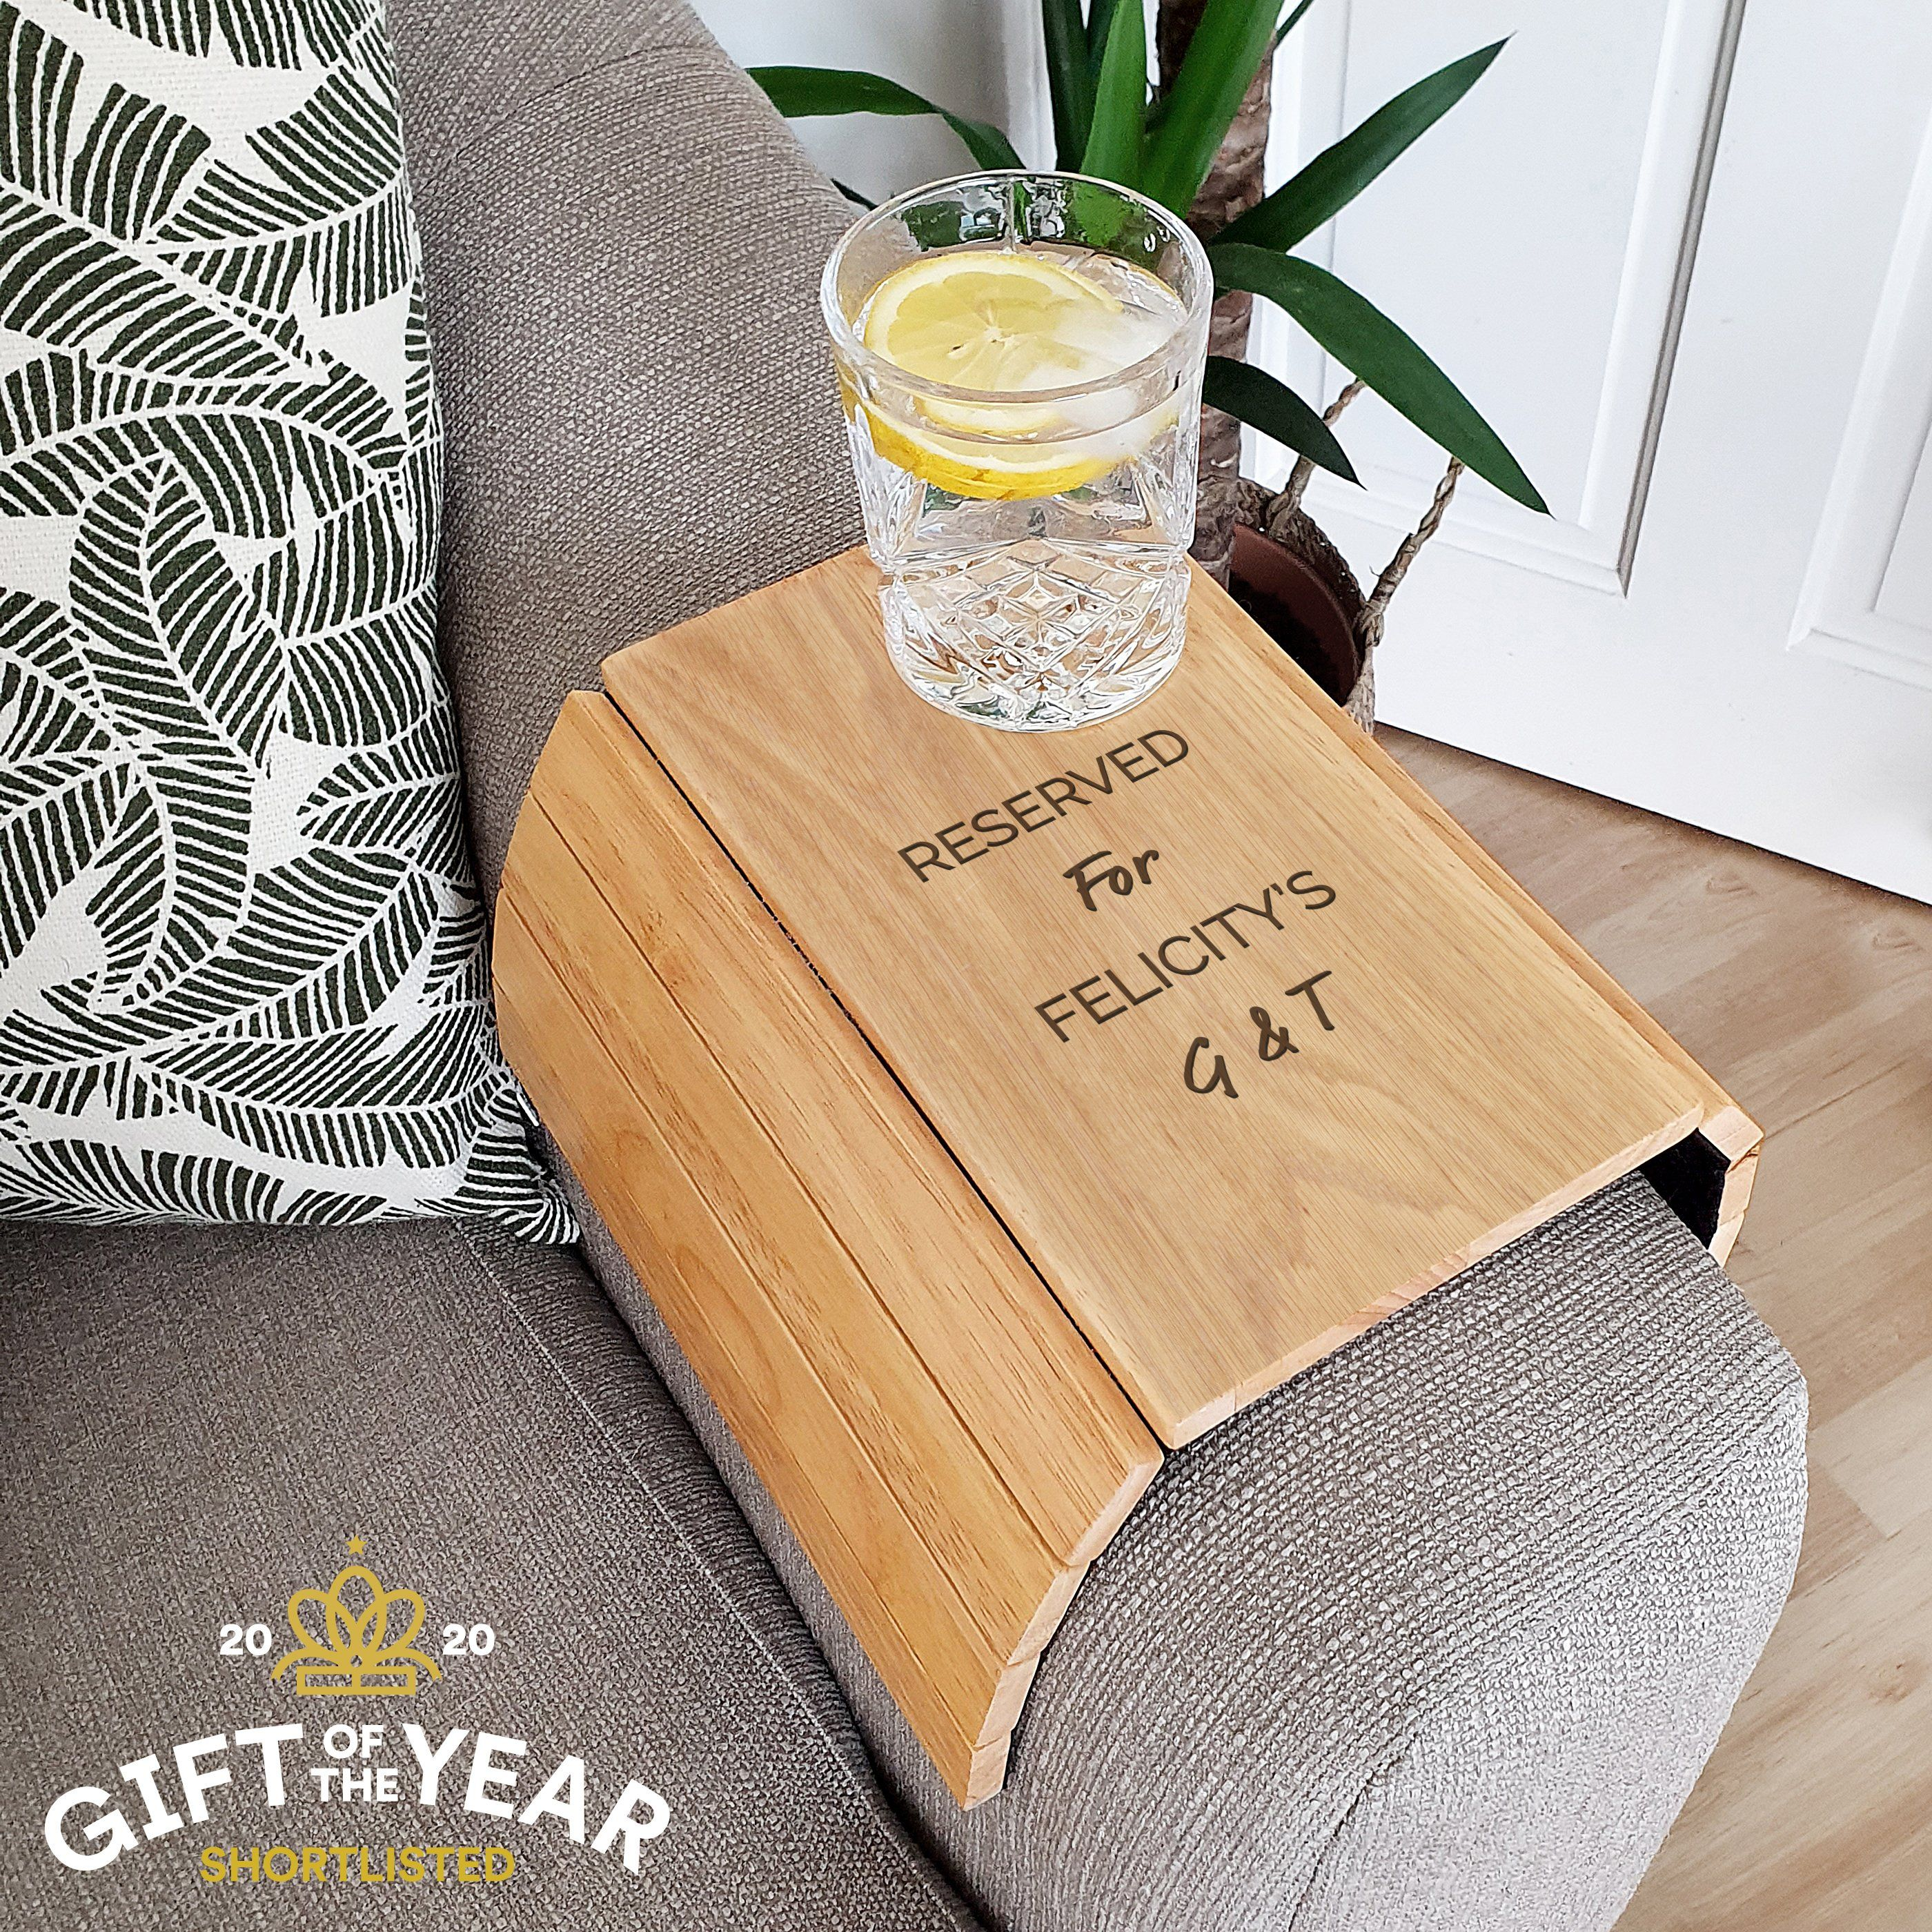 Personalised Free Text Wooden Sofa Tray In 2020 Wooden Sofa New Home Gifts Personalized Gifts For Her